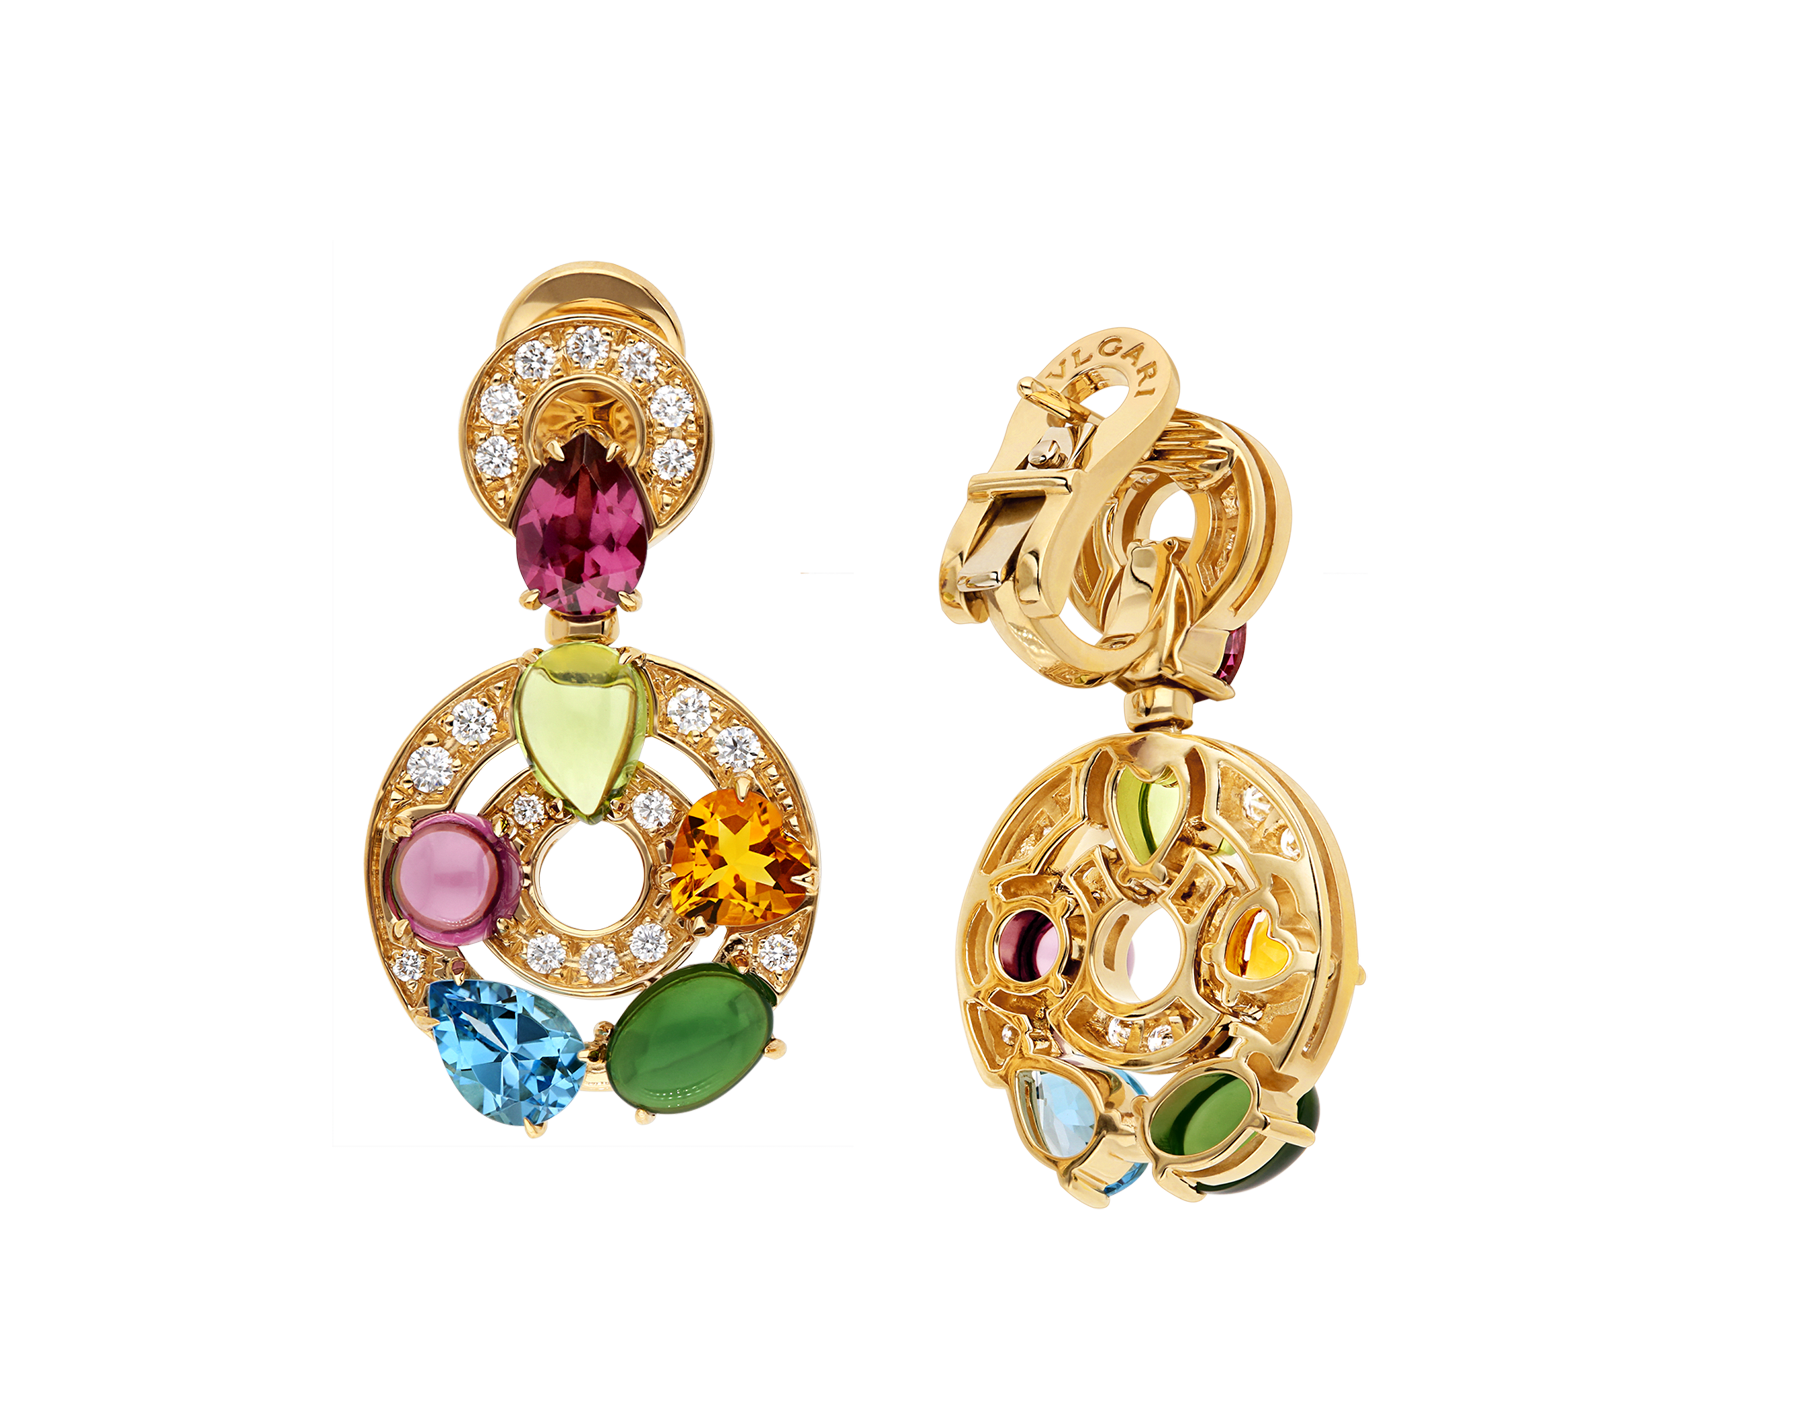 Astrale 18kt yellow gold earrings set with blue topazes, green tourmalines, peridots, citrine quartz, rhodolite garnets and pavé diamonds 339141 image 3